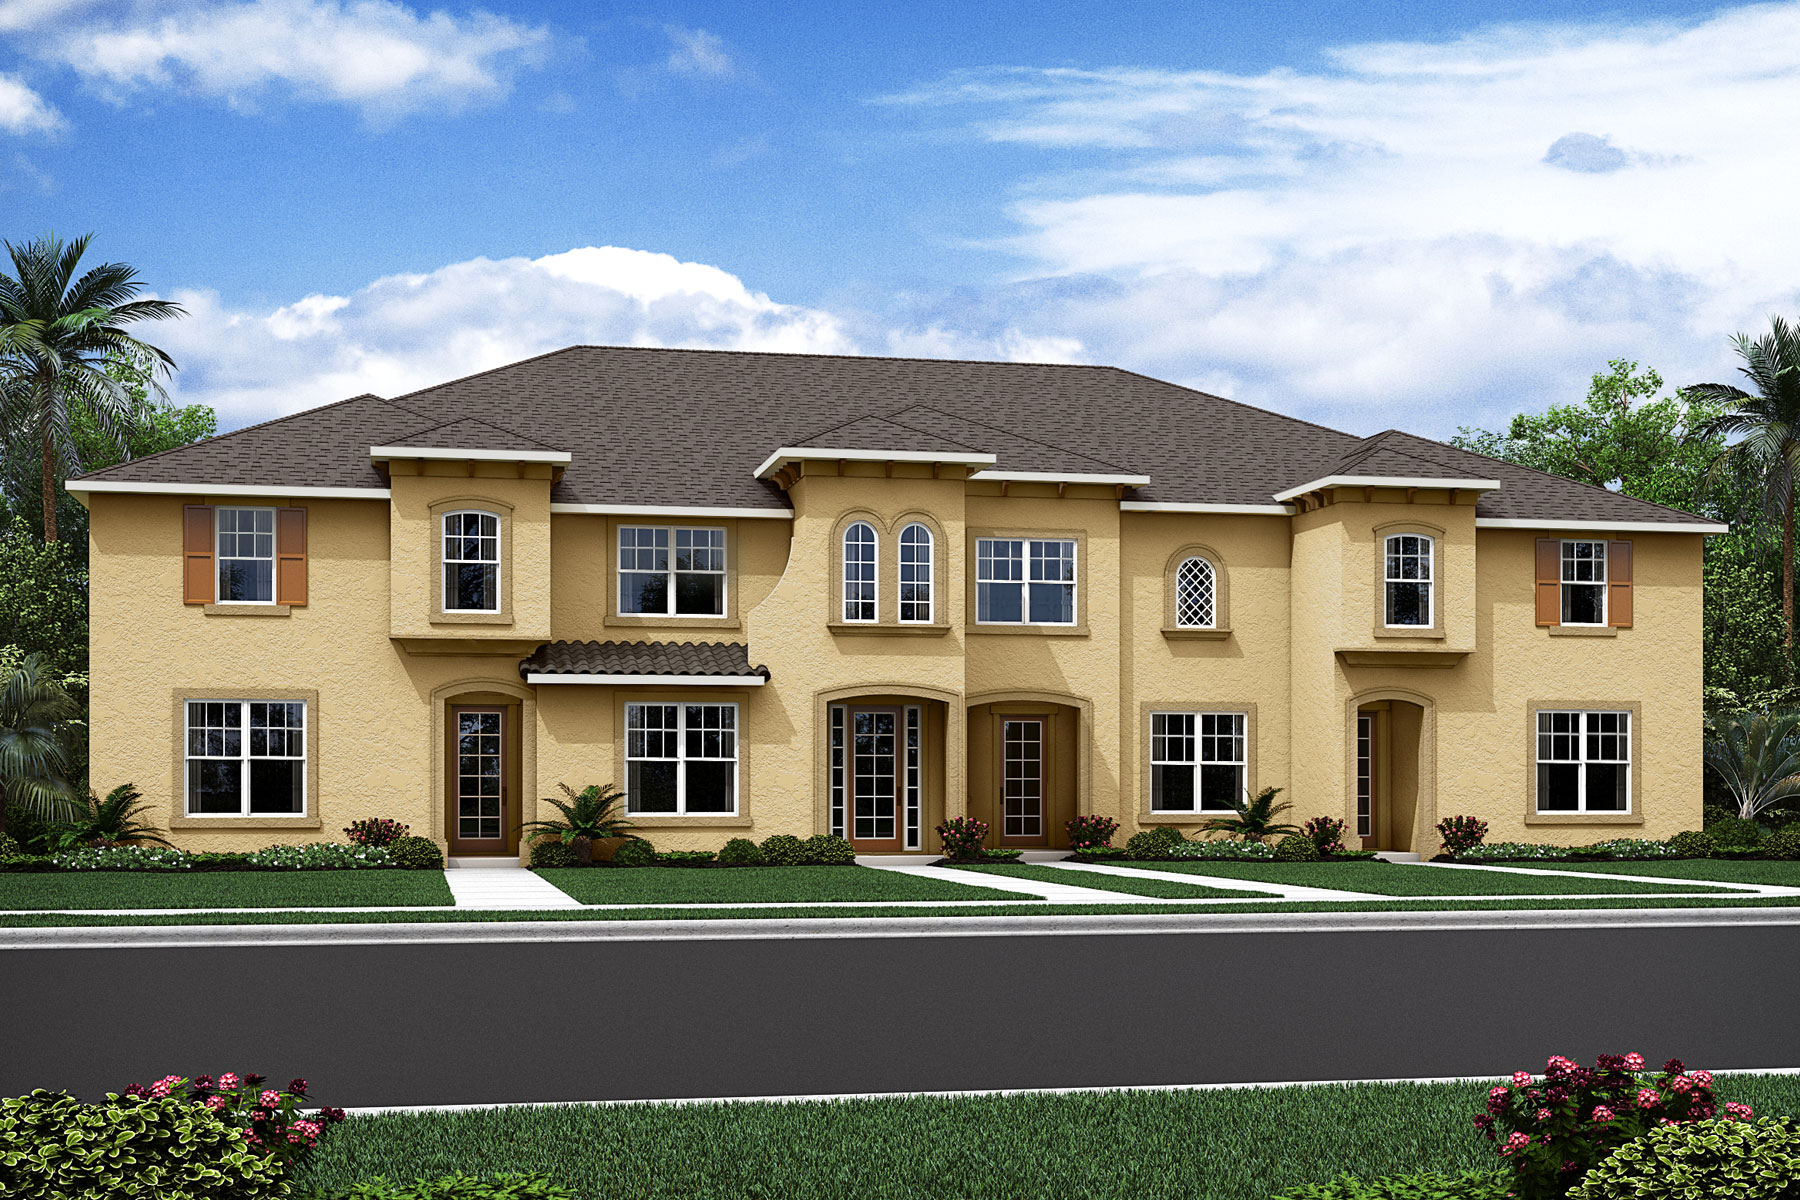 Bayside Plan TownHomes at Solara Resort in Kissimmee Florida by Mattamy Homes